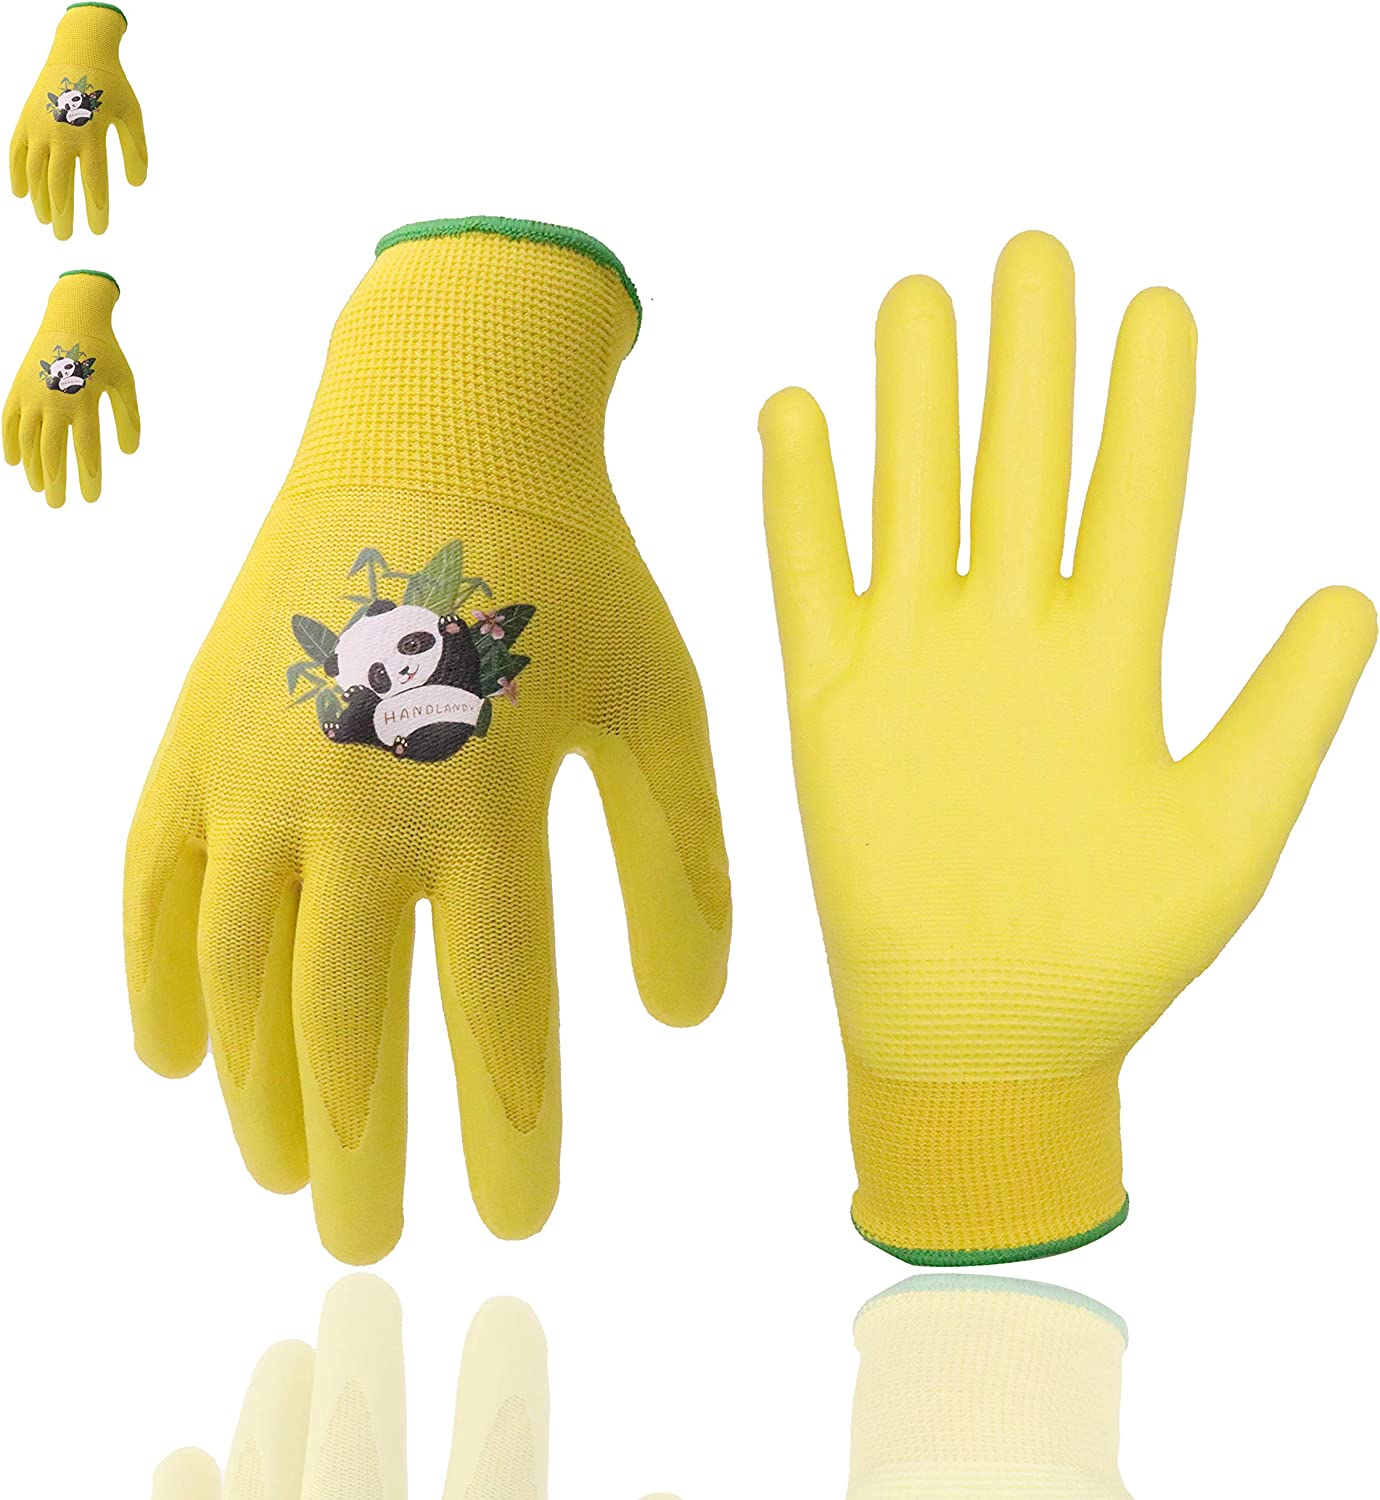 Kids Gardening Gloves, 3 Pairs Candy Colors Children Garden Gloves with Rubber Coated Palm for Age 2-13 Girls Boys (Size 2 (Age 2-4), Yellow 3 Pairs)